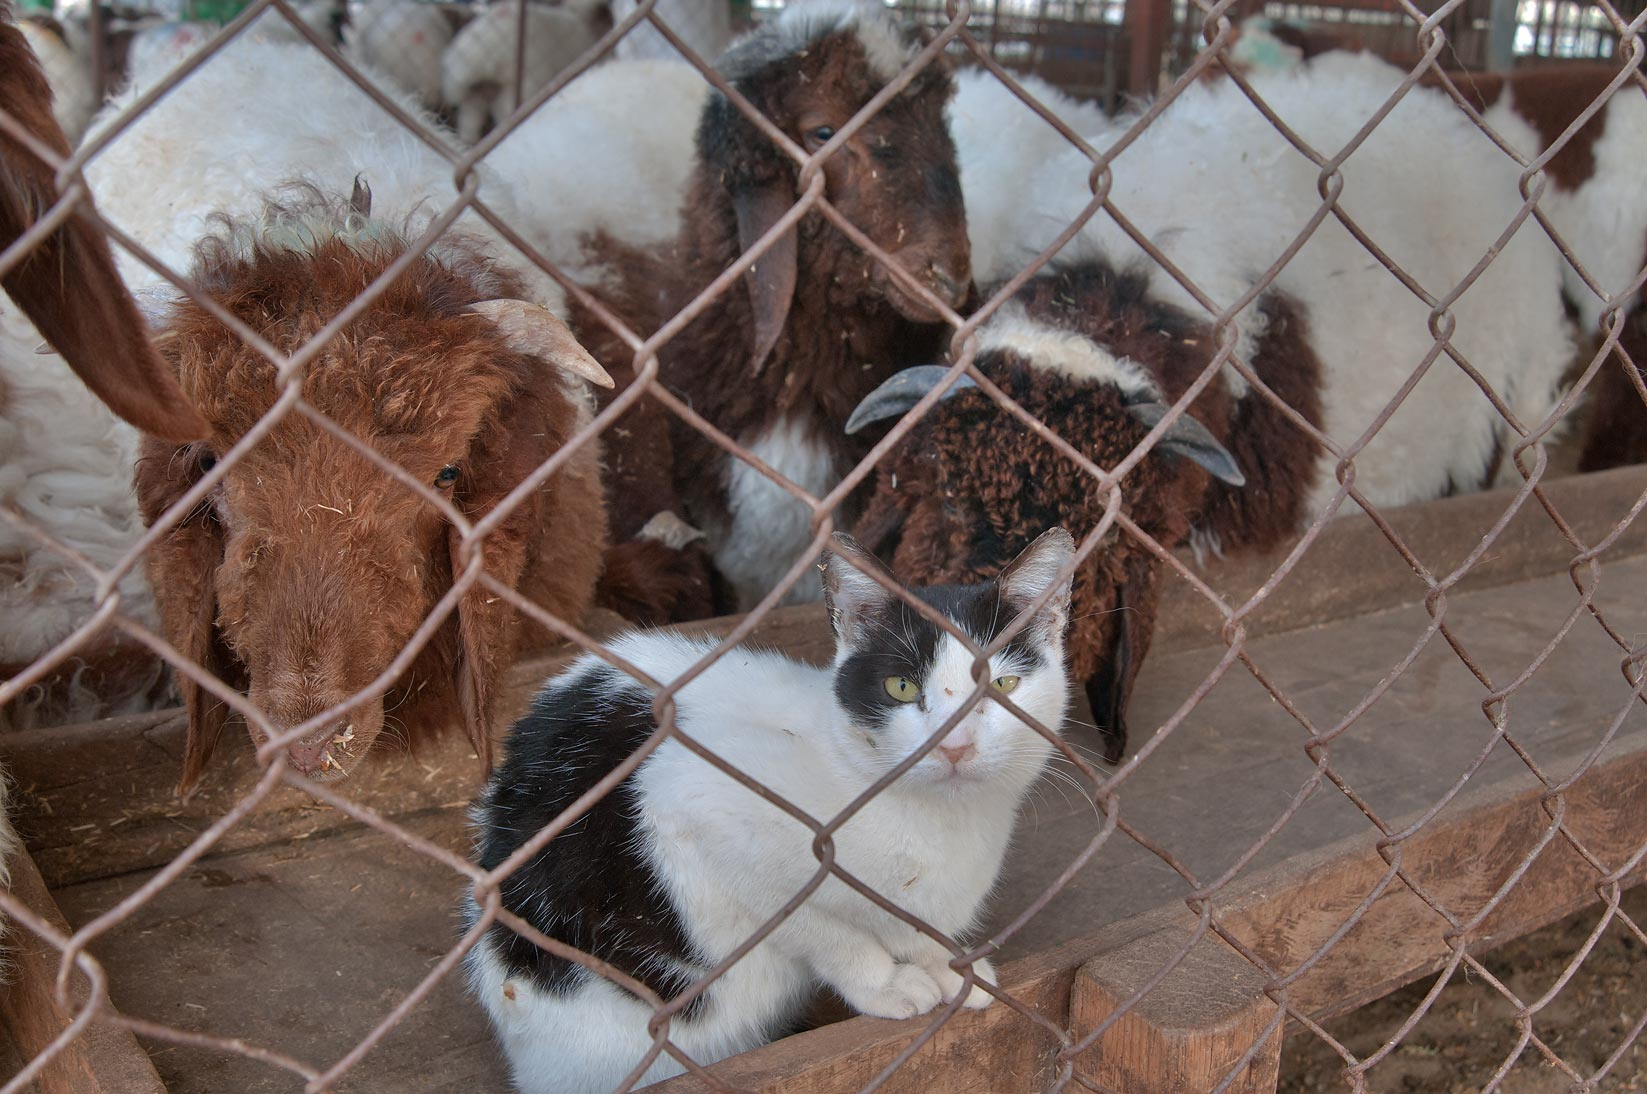 Cat living in sheep pen in animal market. Doha, Qatar